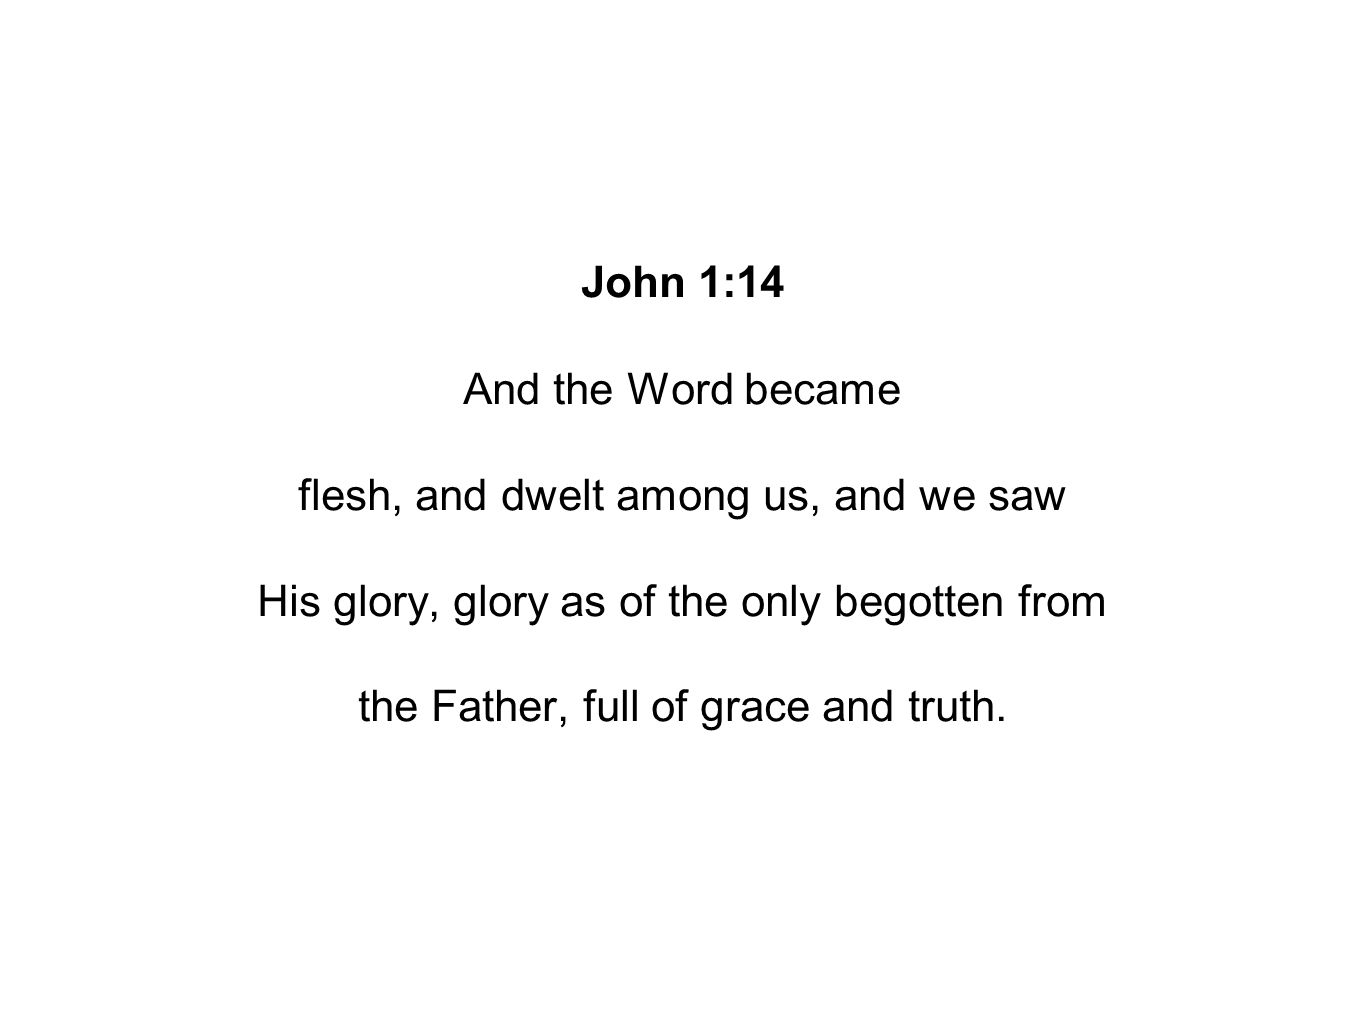 John 1:14 And the Word became flesh, and dwelt among us, and we saw His glory, glory as of the only begotten from the Father, full of grace and truth.